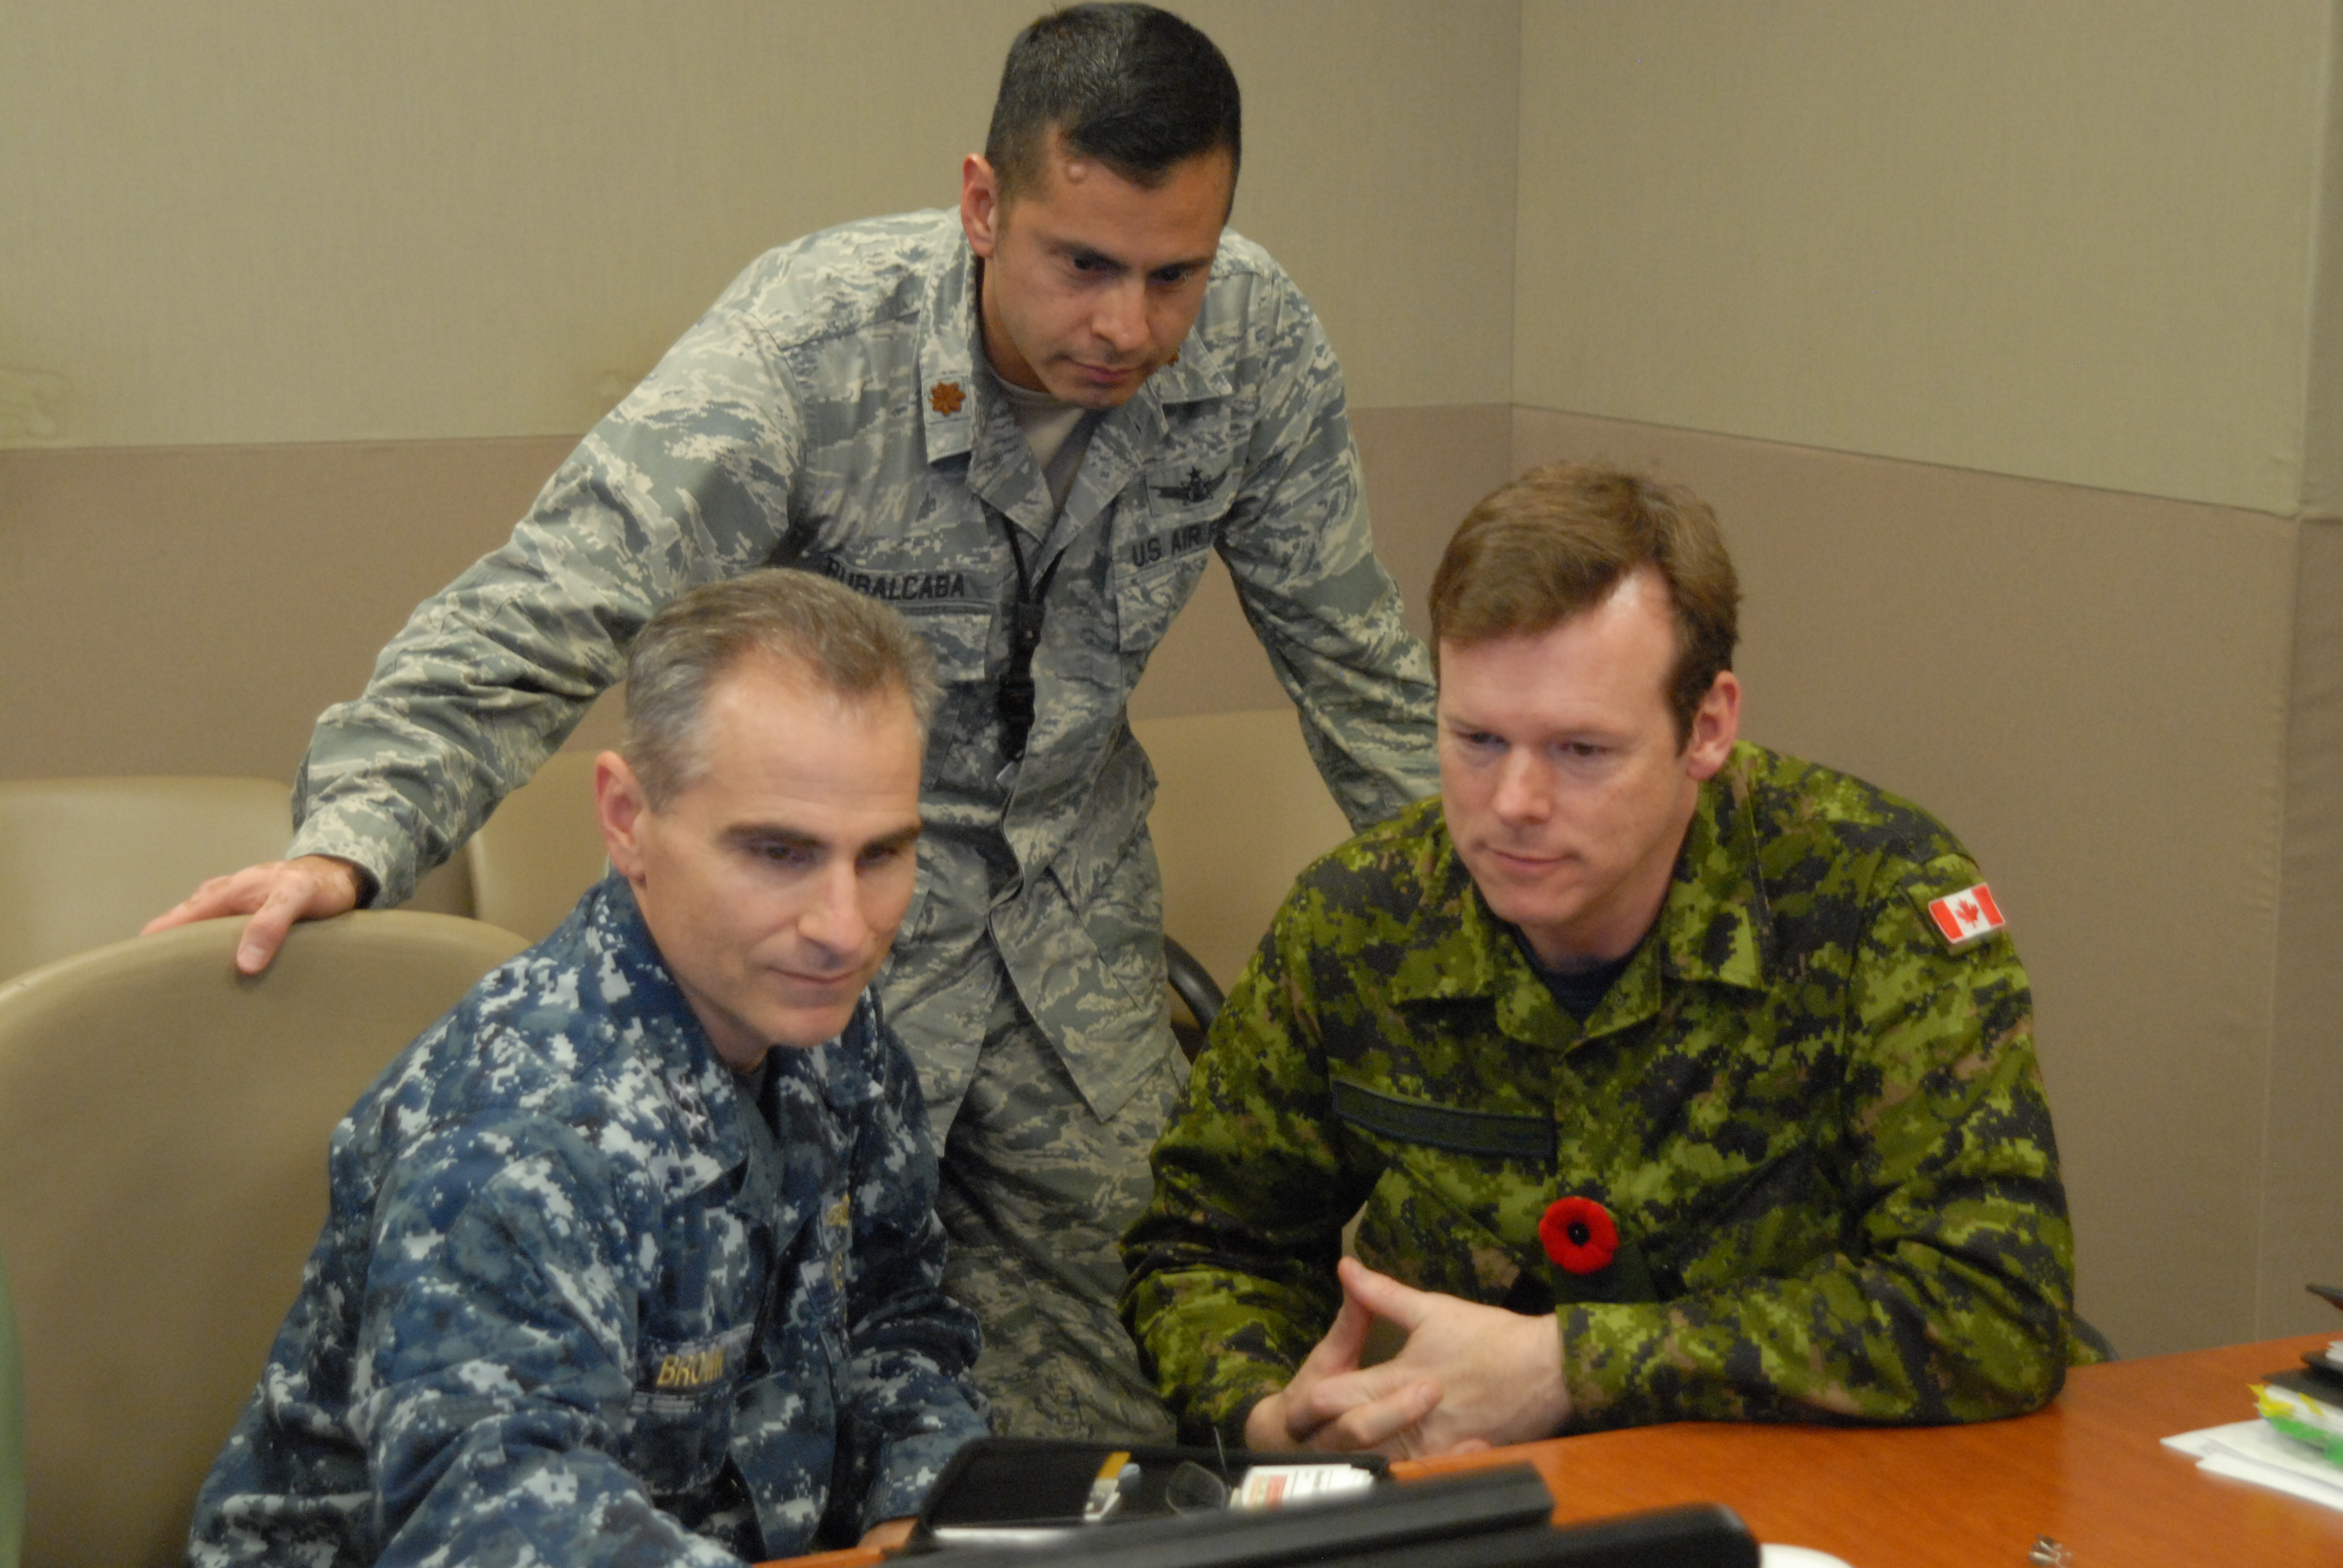 JFCC Space concludes command and control exercise